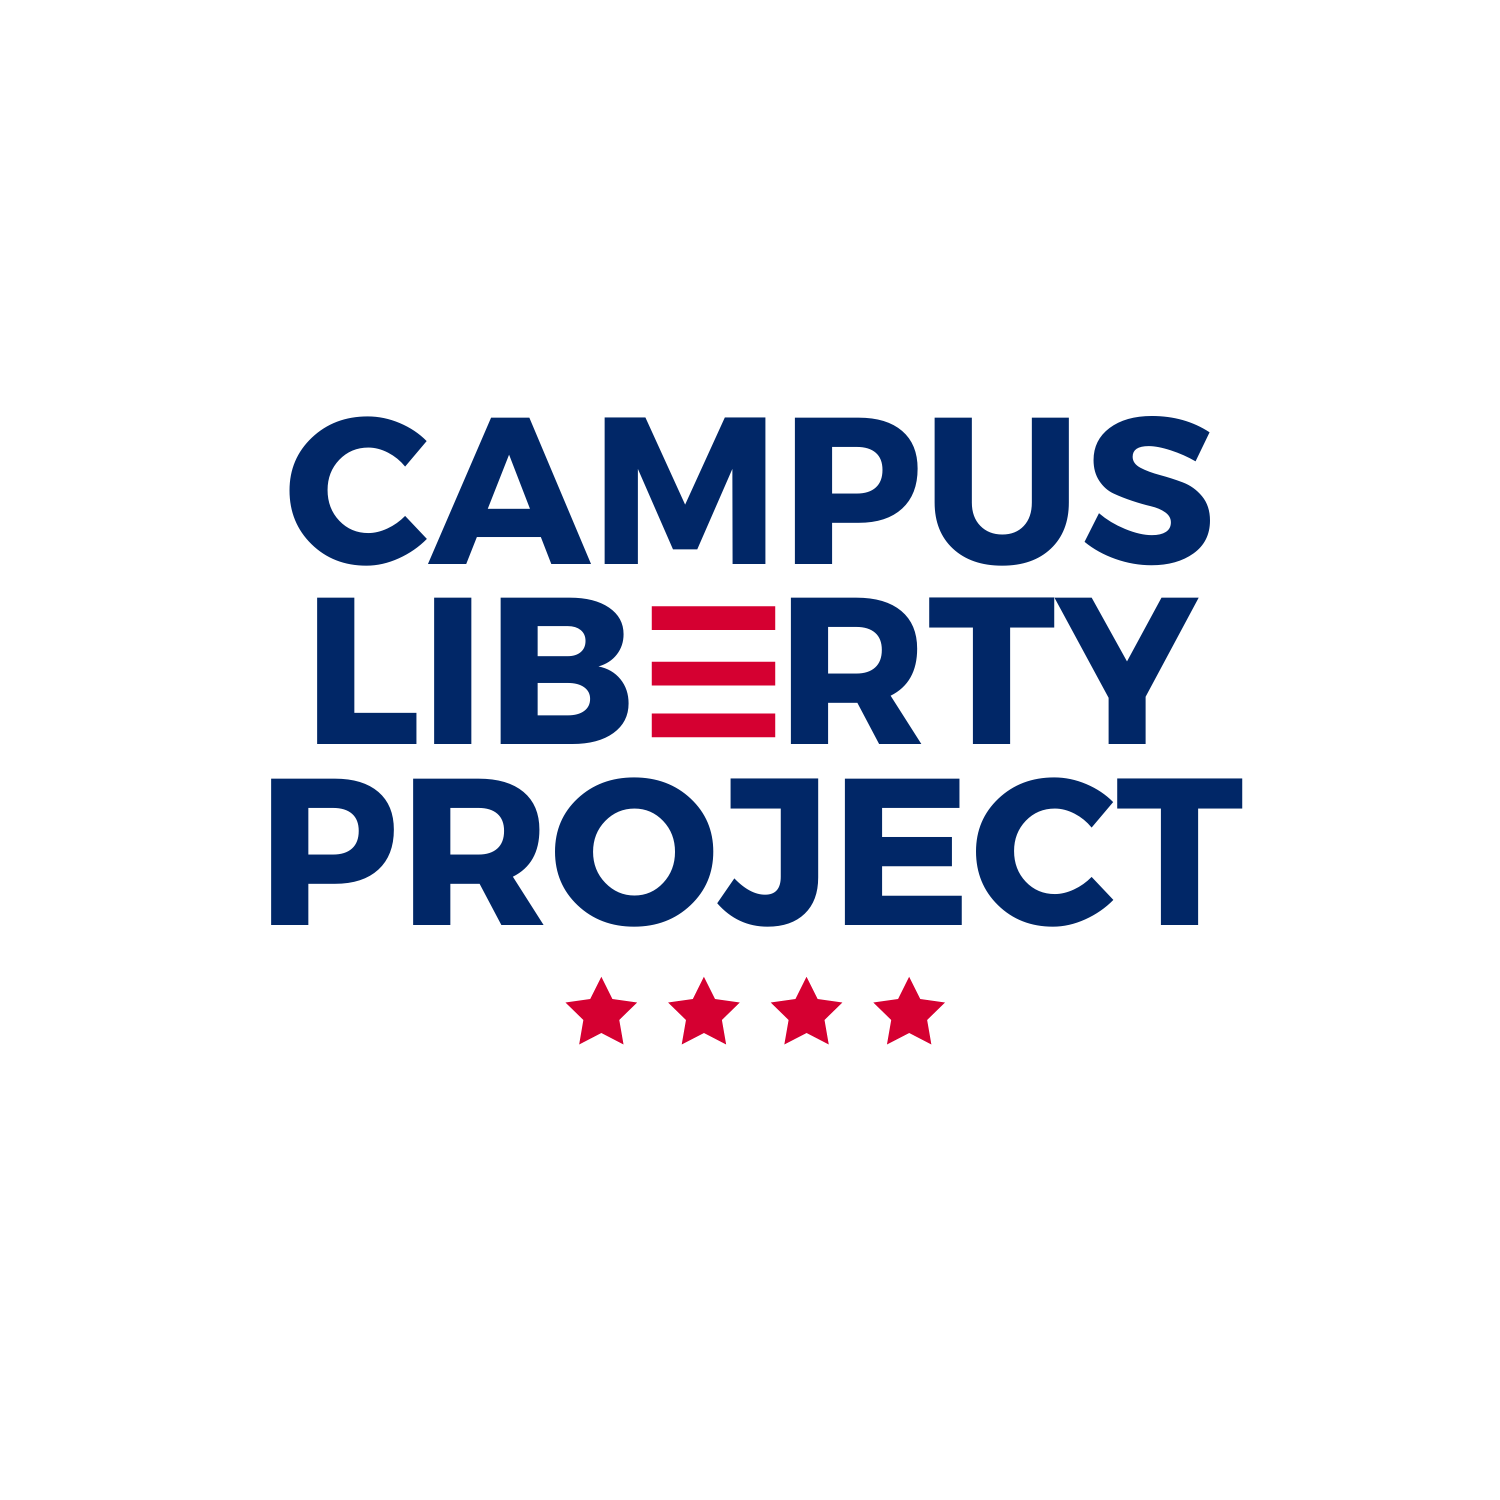 Campus Liberty Project (1)